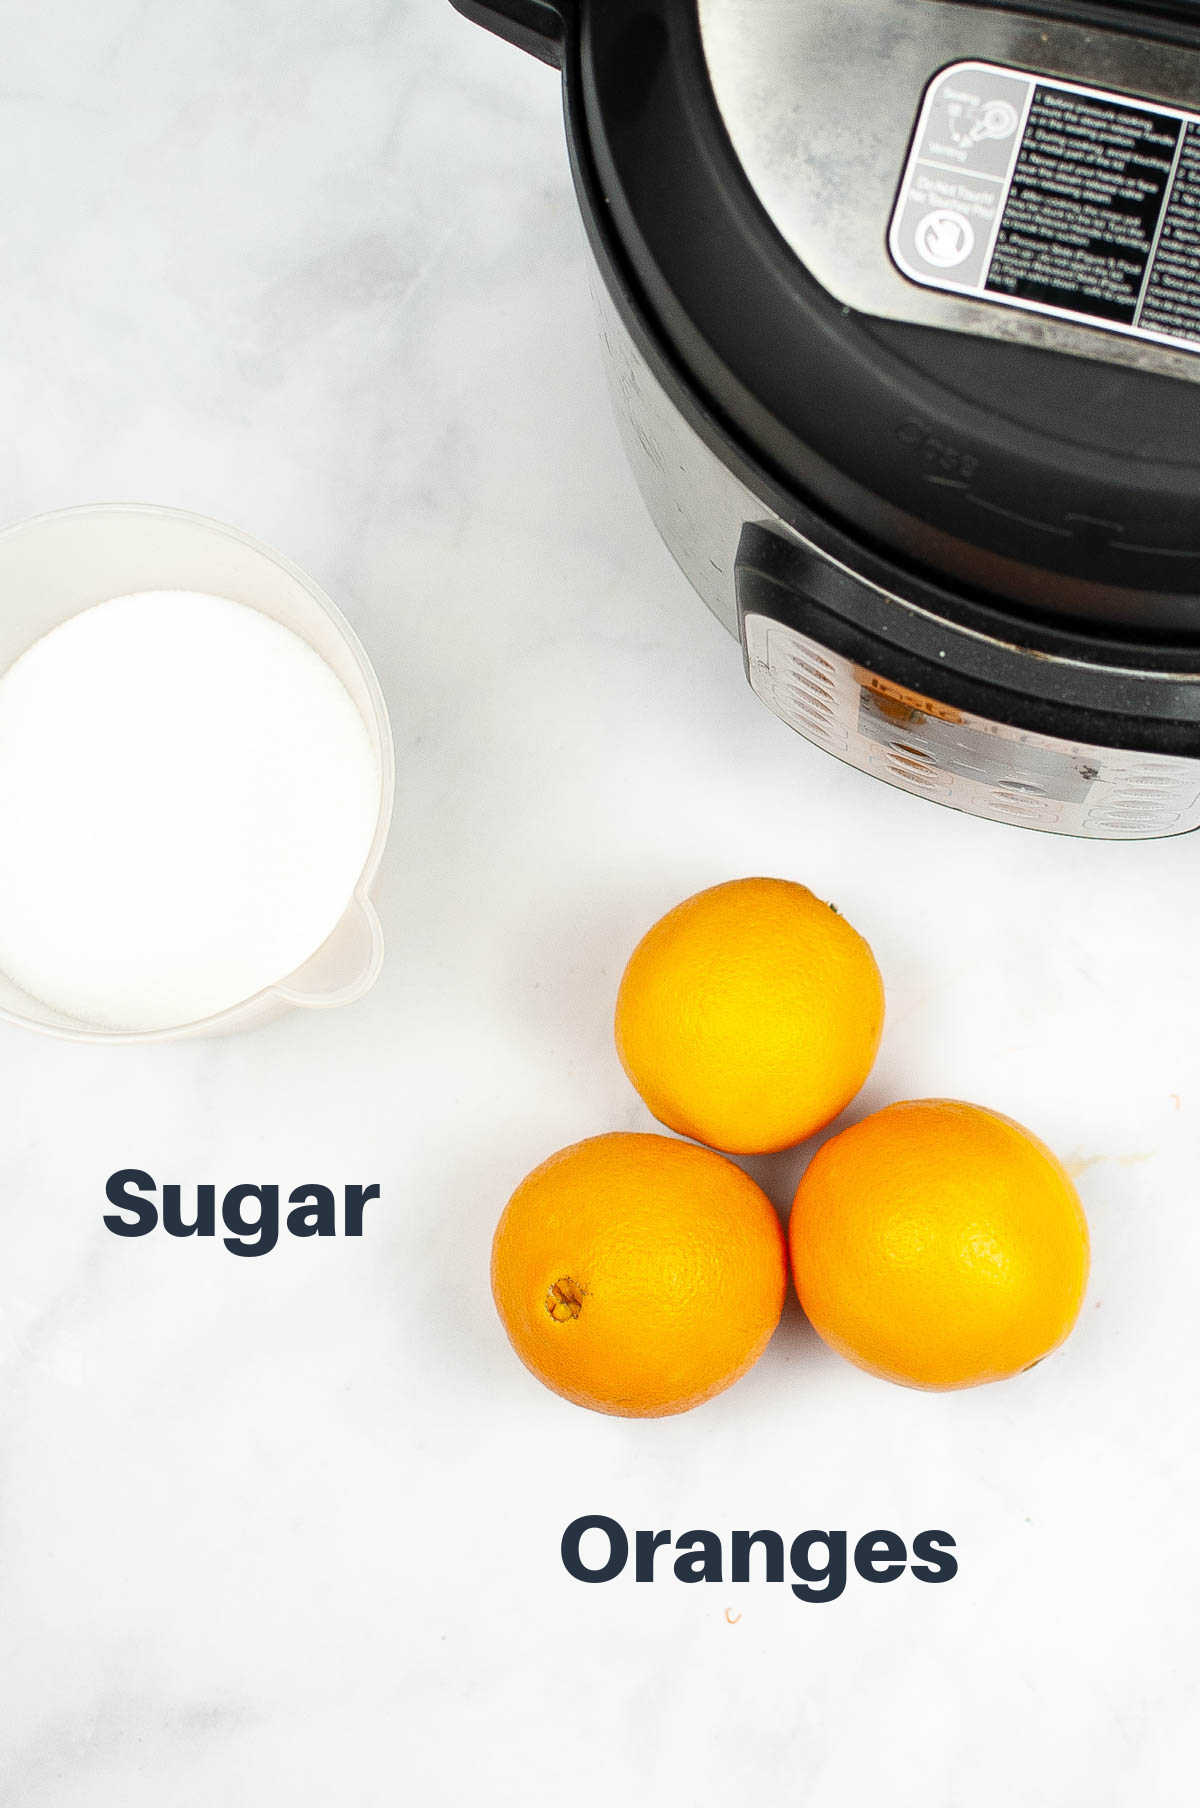 ingredient photo showing oranges and sugar with labels and the instant pot.